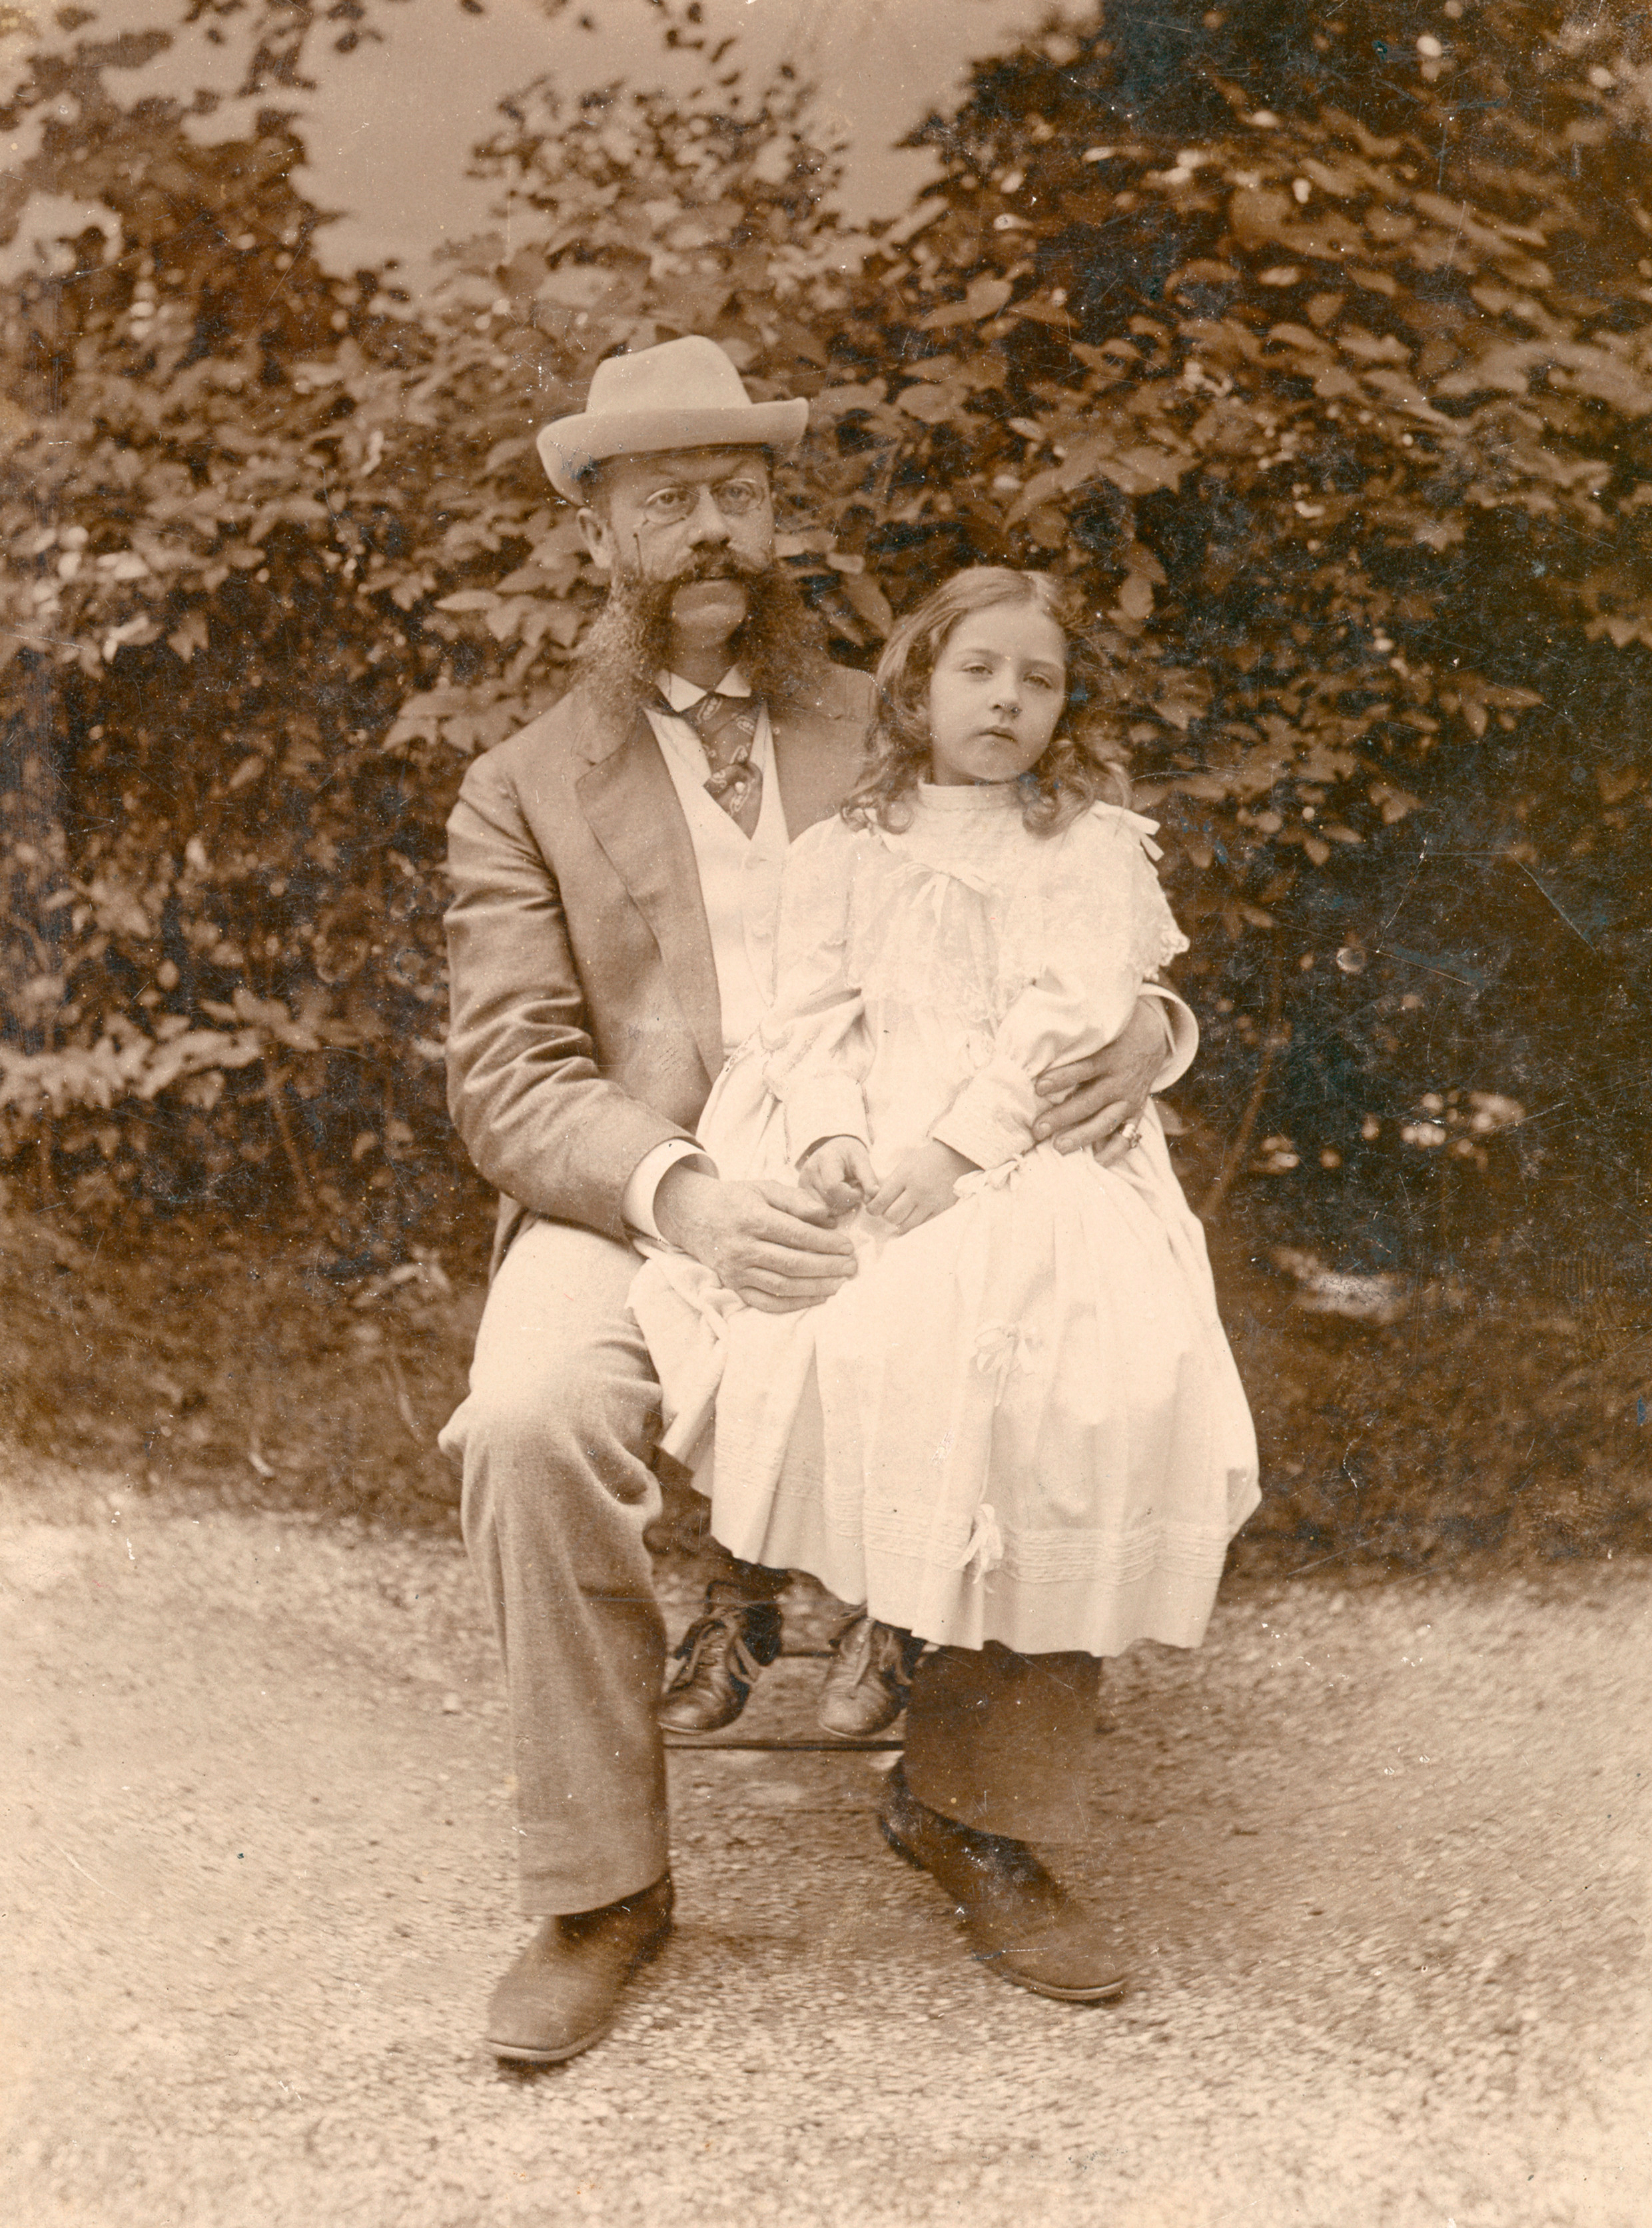 Emil Jellinek mit seiner Tochter Mercédès. Aufgenommen um 1895.   Emil Jellinek with his daughter, Mercédès. Photographed around 1895.